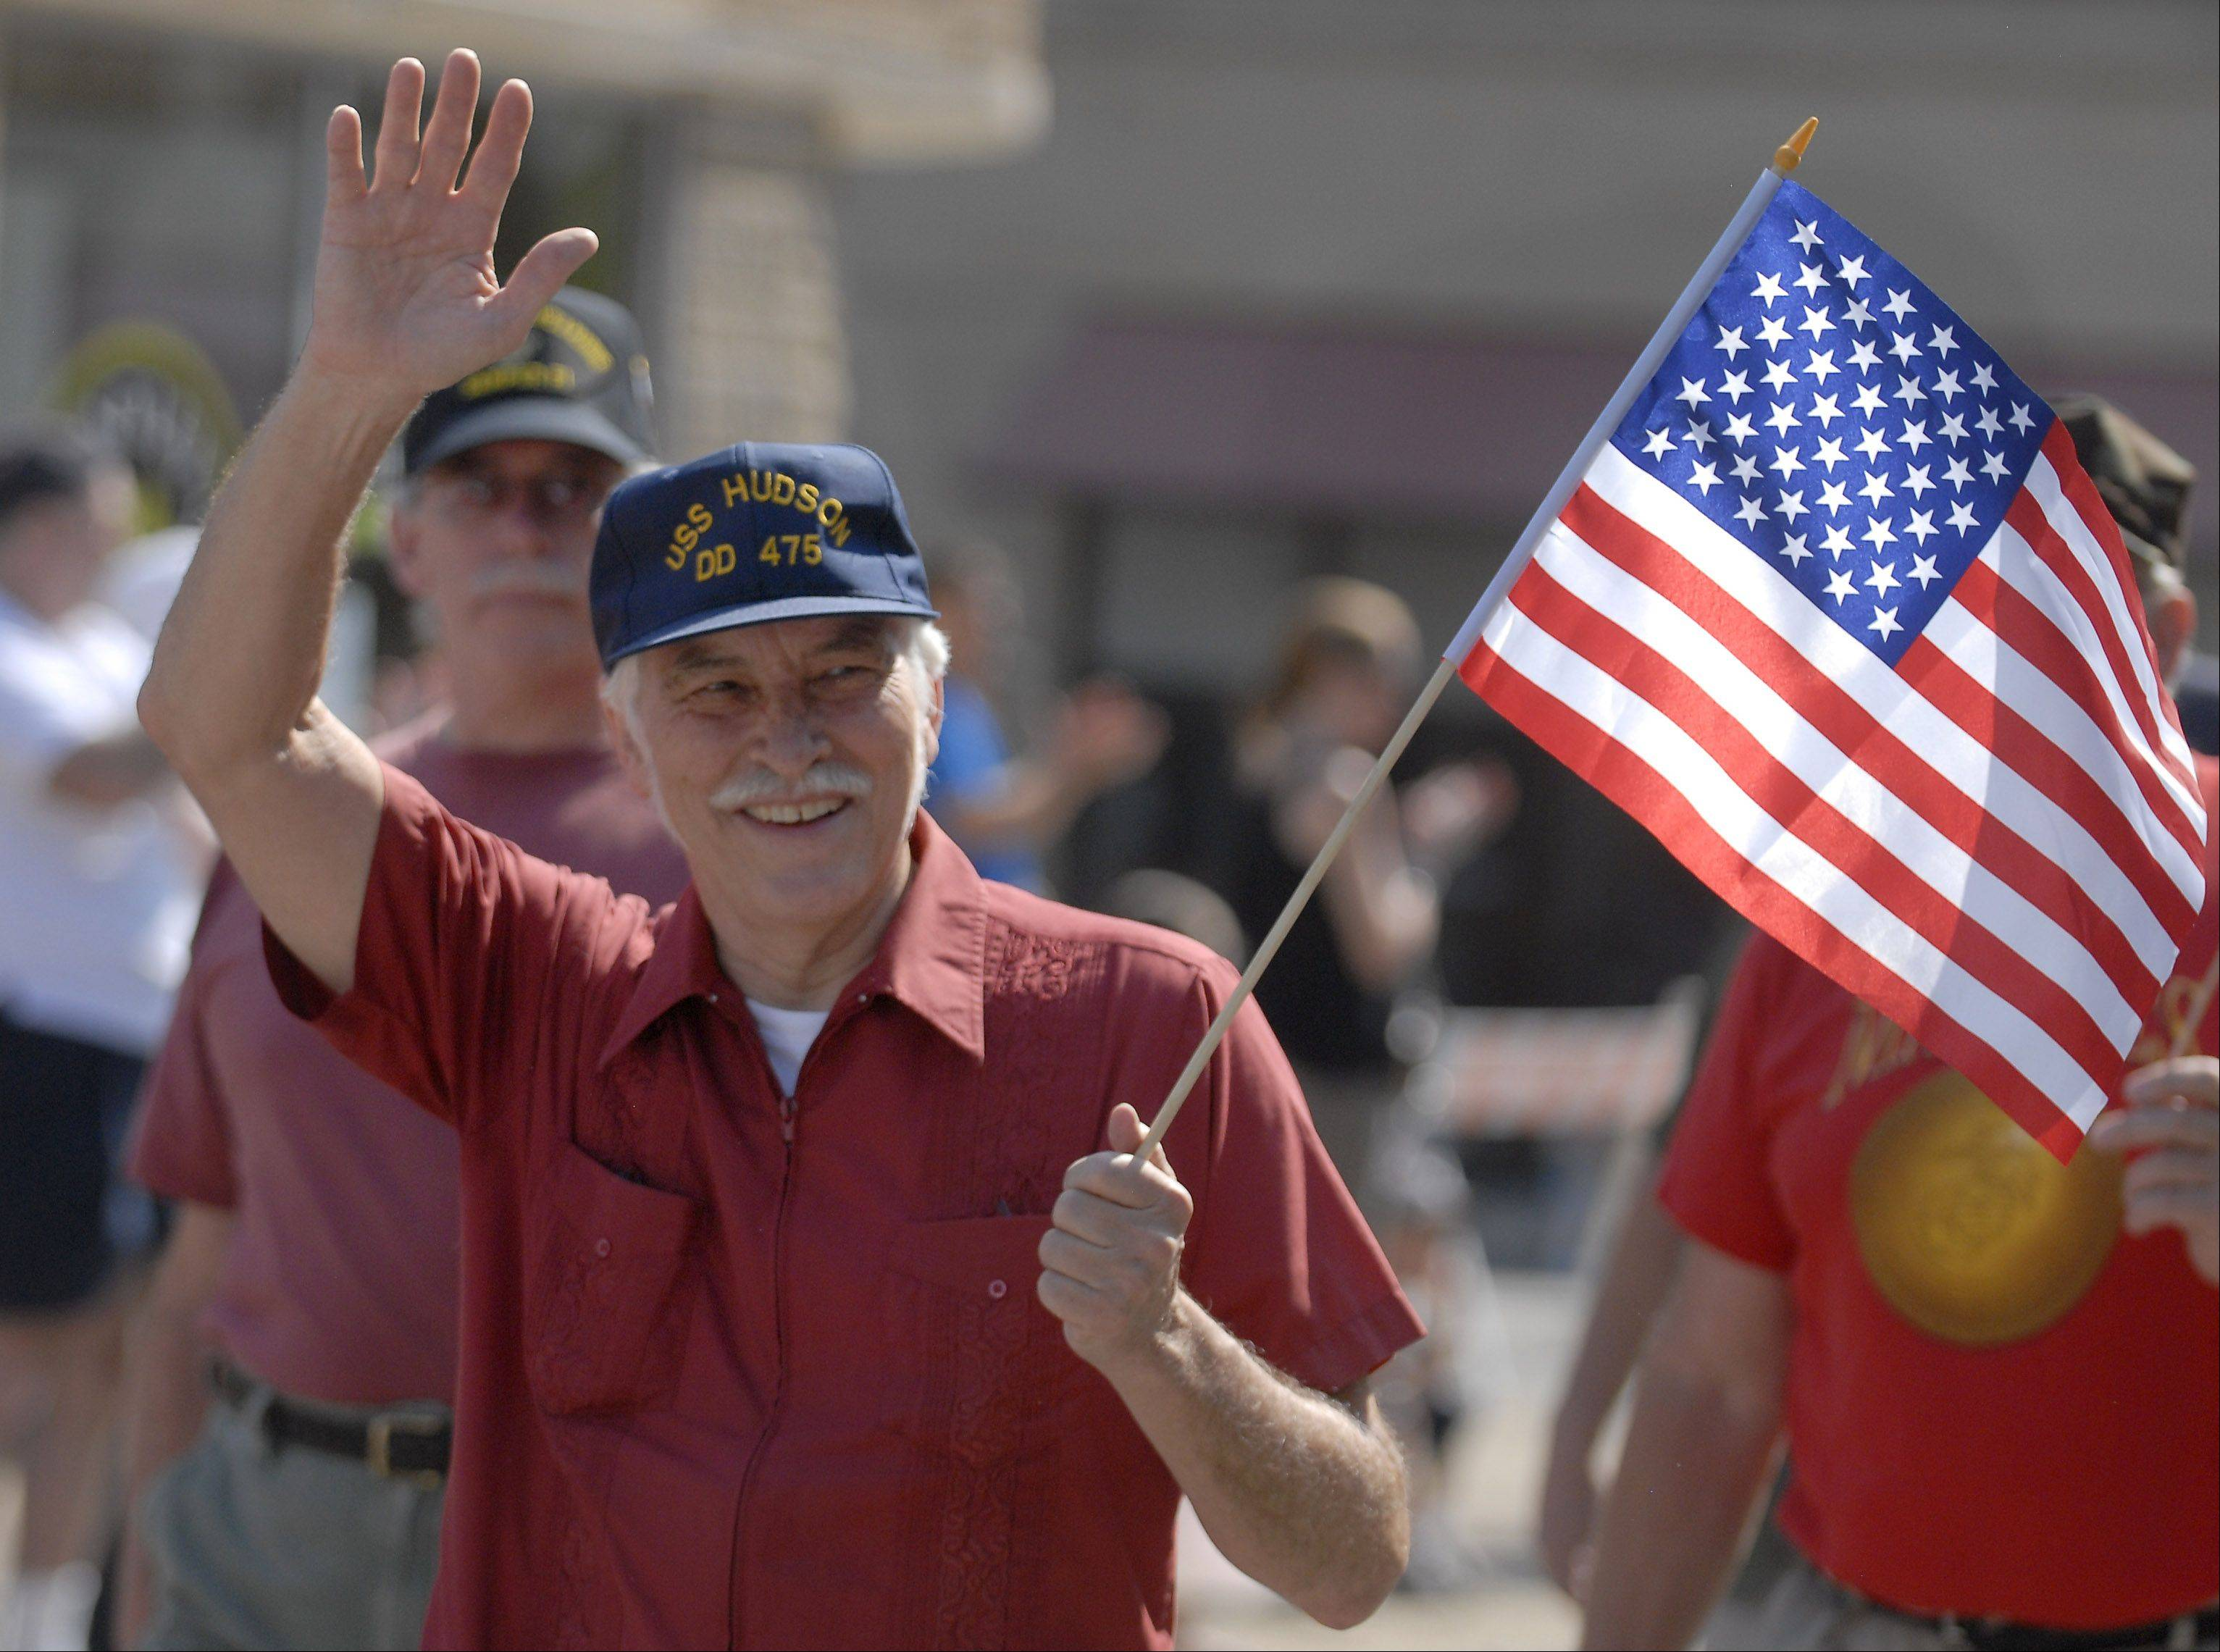 Steve Sharel of Arlington Heights marches with the Vietnam Veterans of America Chapter 311 at the Memorial Day parade in Monday in Arlington Heights. Sharel served onboard the carrier USS Enterprise as an Aviation Storekeeper during the Vietnam War.